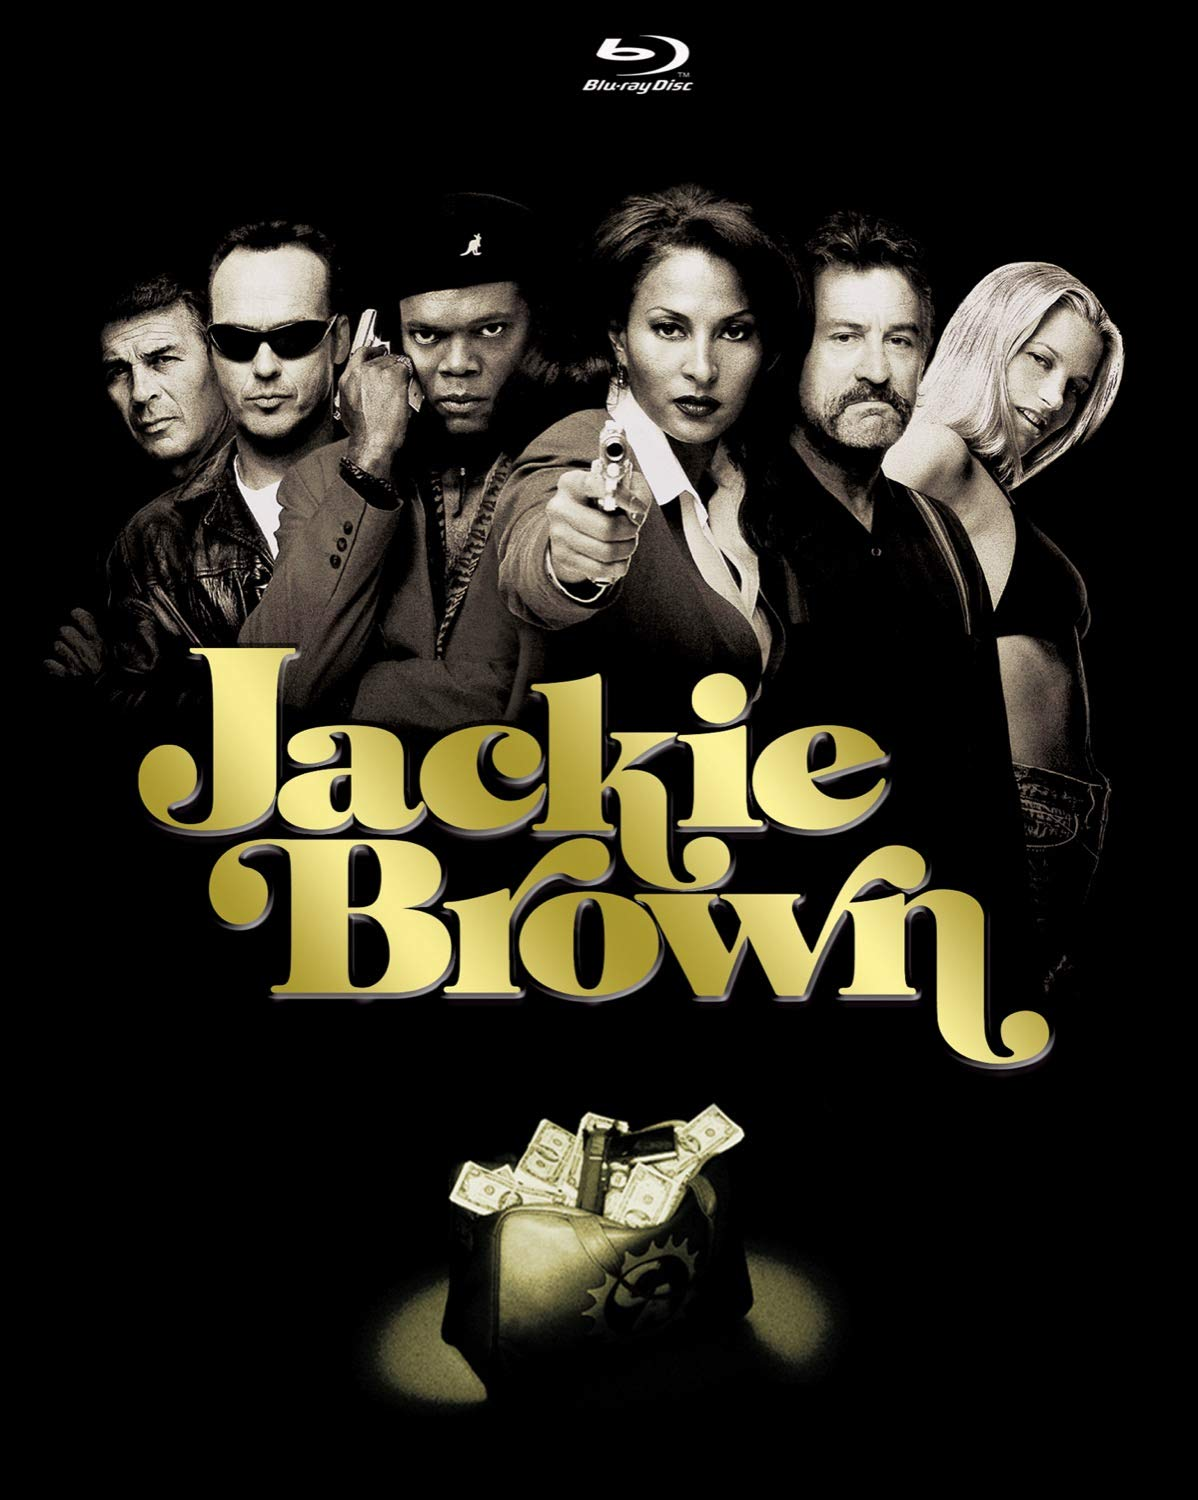 Jackie Brown Blu-ray Max 72% OFF + Max 89% OFF DVD